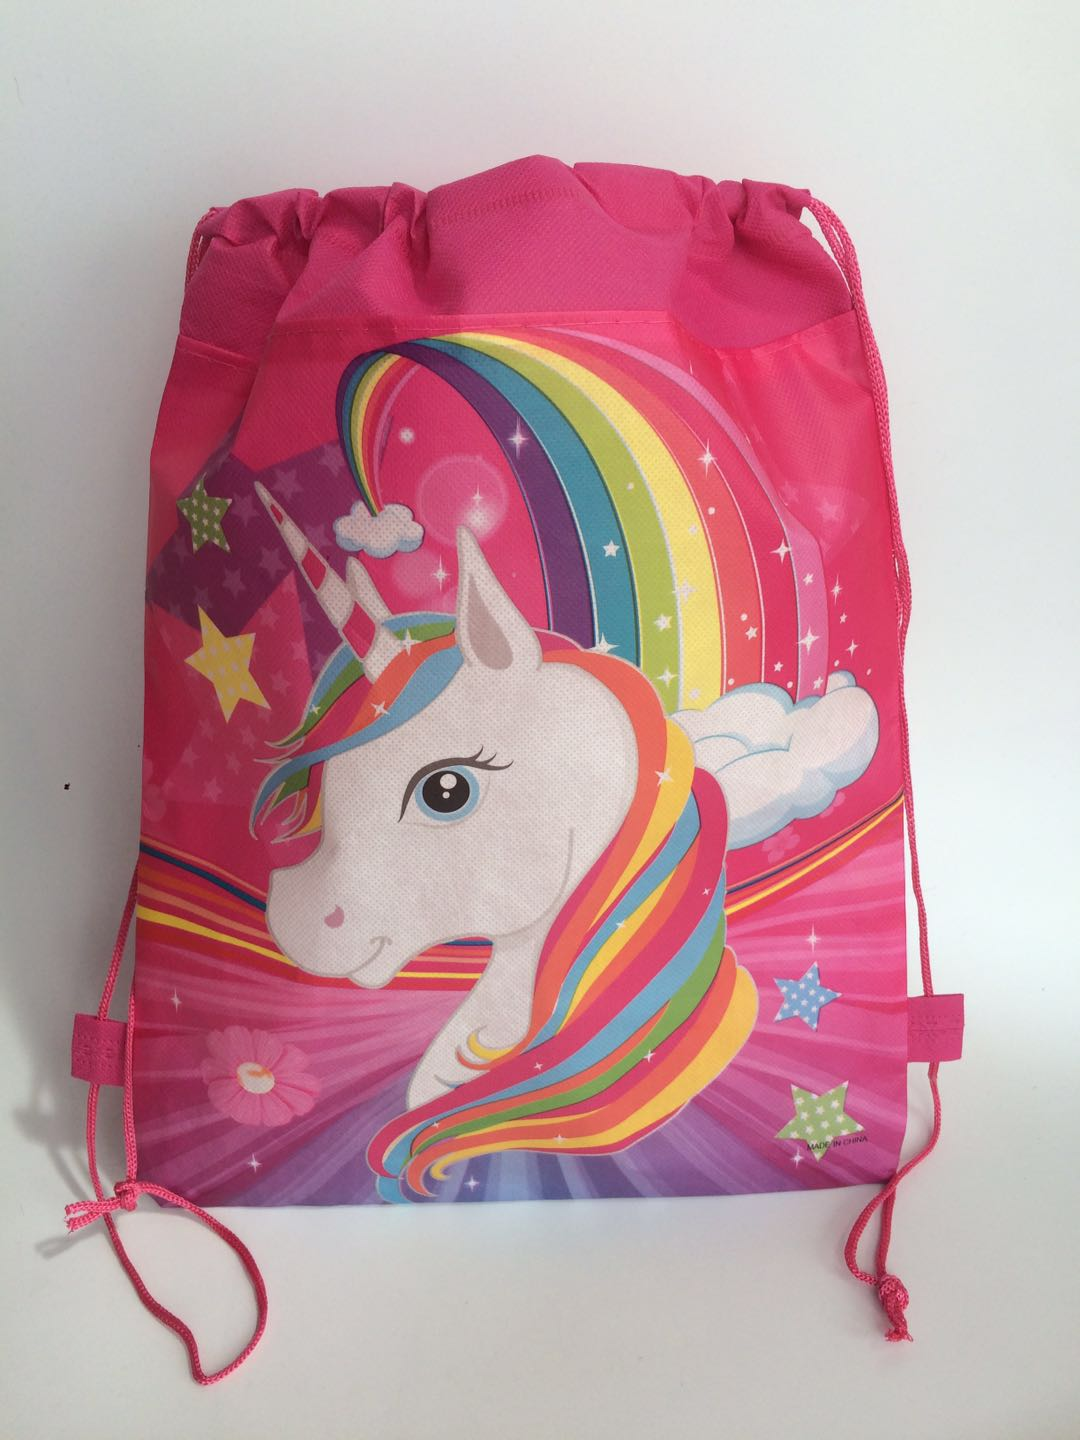 children's zoo animal baby infant unicorn school bag for kids boy and girls unicorn birthday party stuff supplies gifts for baby zoo animal sweetheart backpack toddler pouch non woven string shoe shourlder school bag for boy and girls birthday party gift